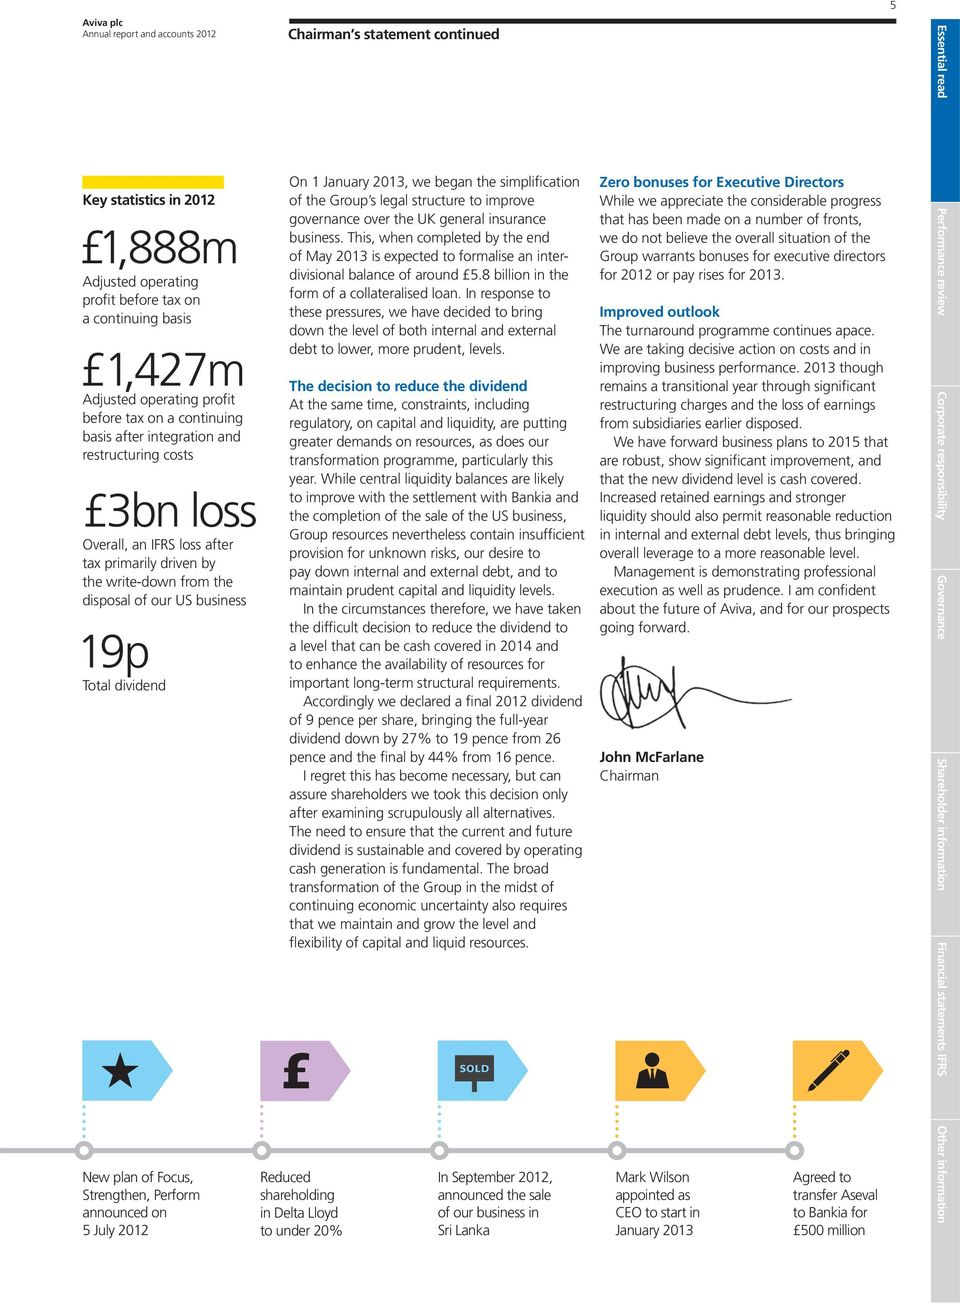 announced on 5 July 2012 Chairman s statement continued On 1 January 2013, we began the simplification of the Group s legal structure to improve governance over the UK general insurance business.